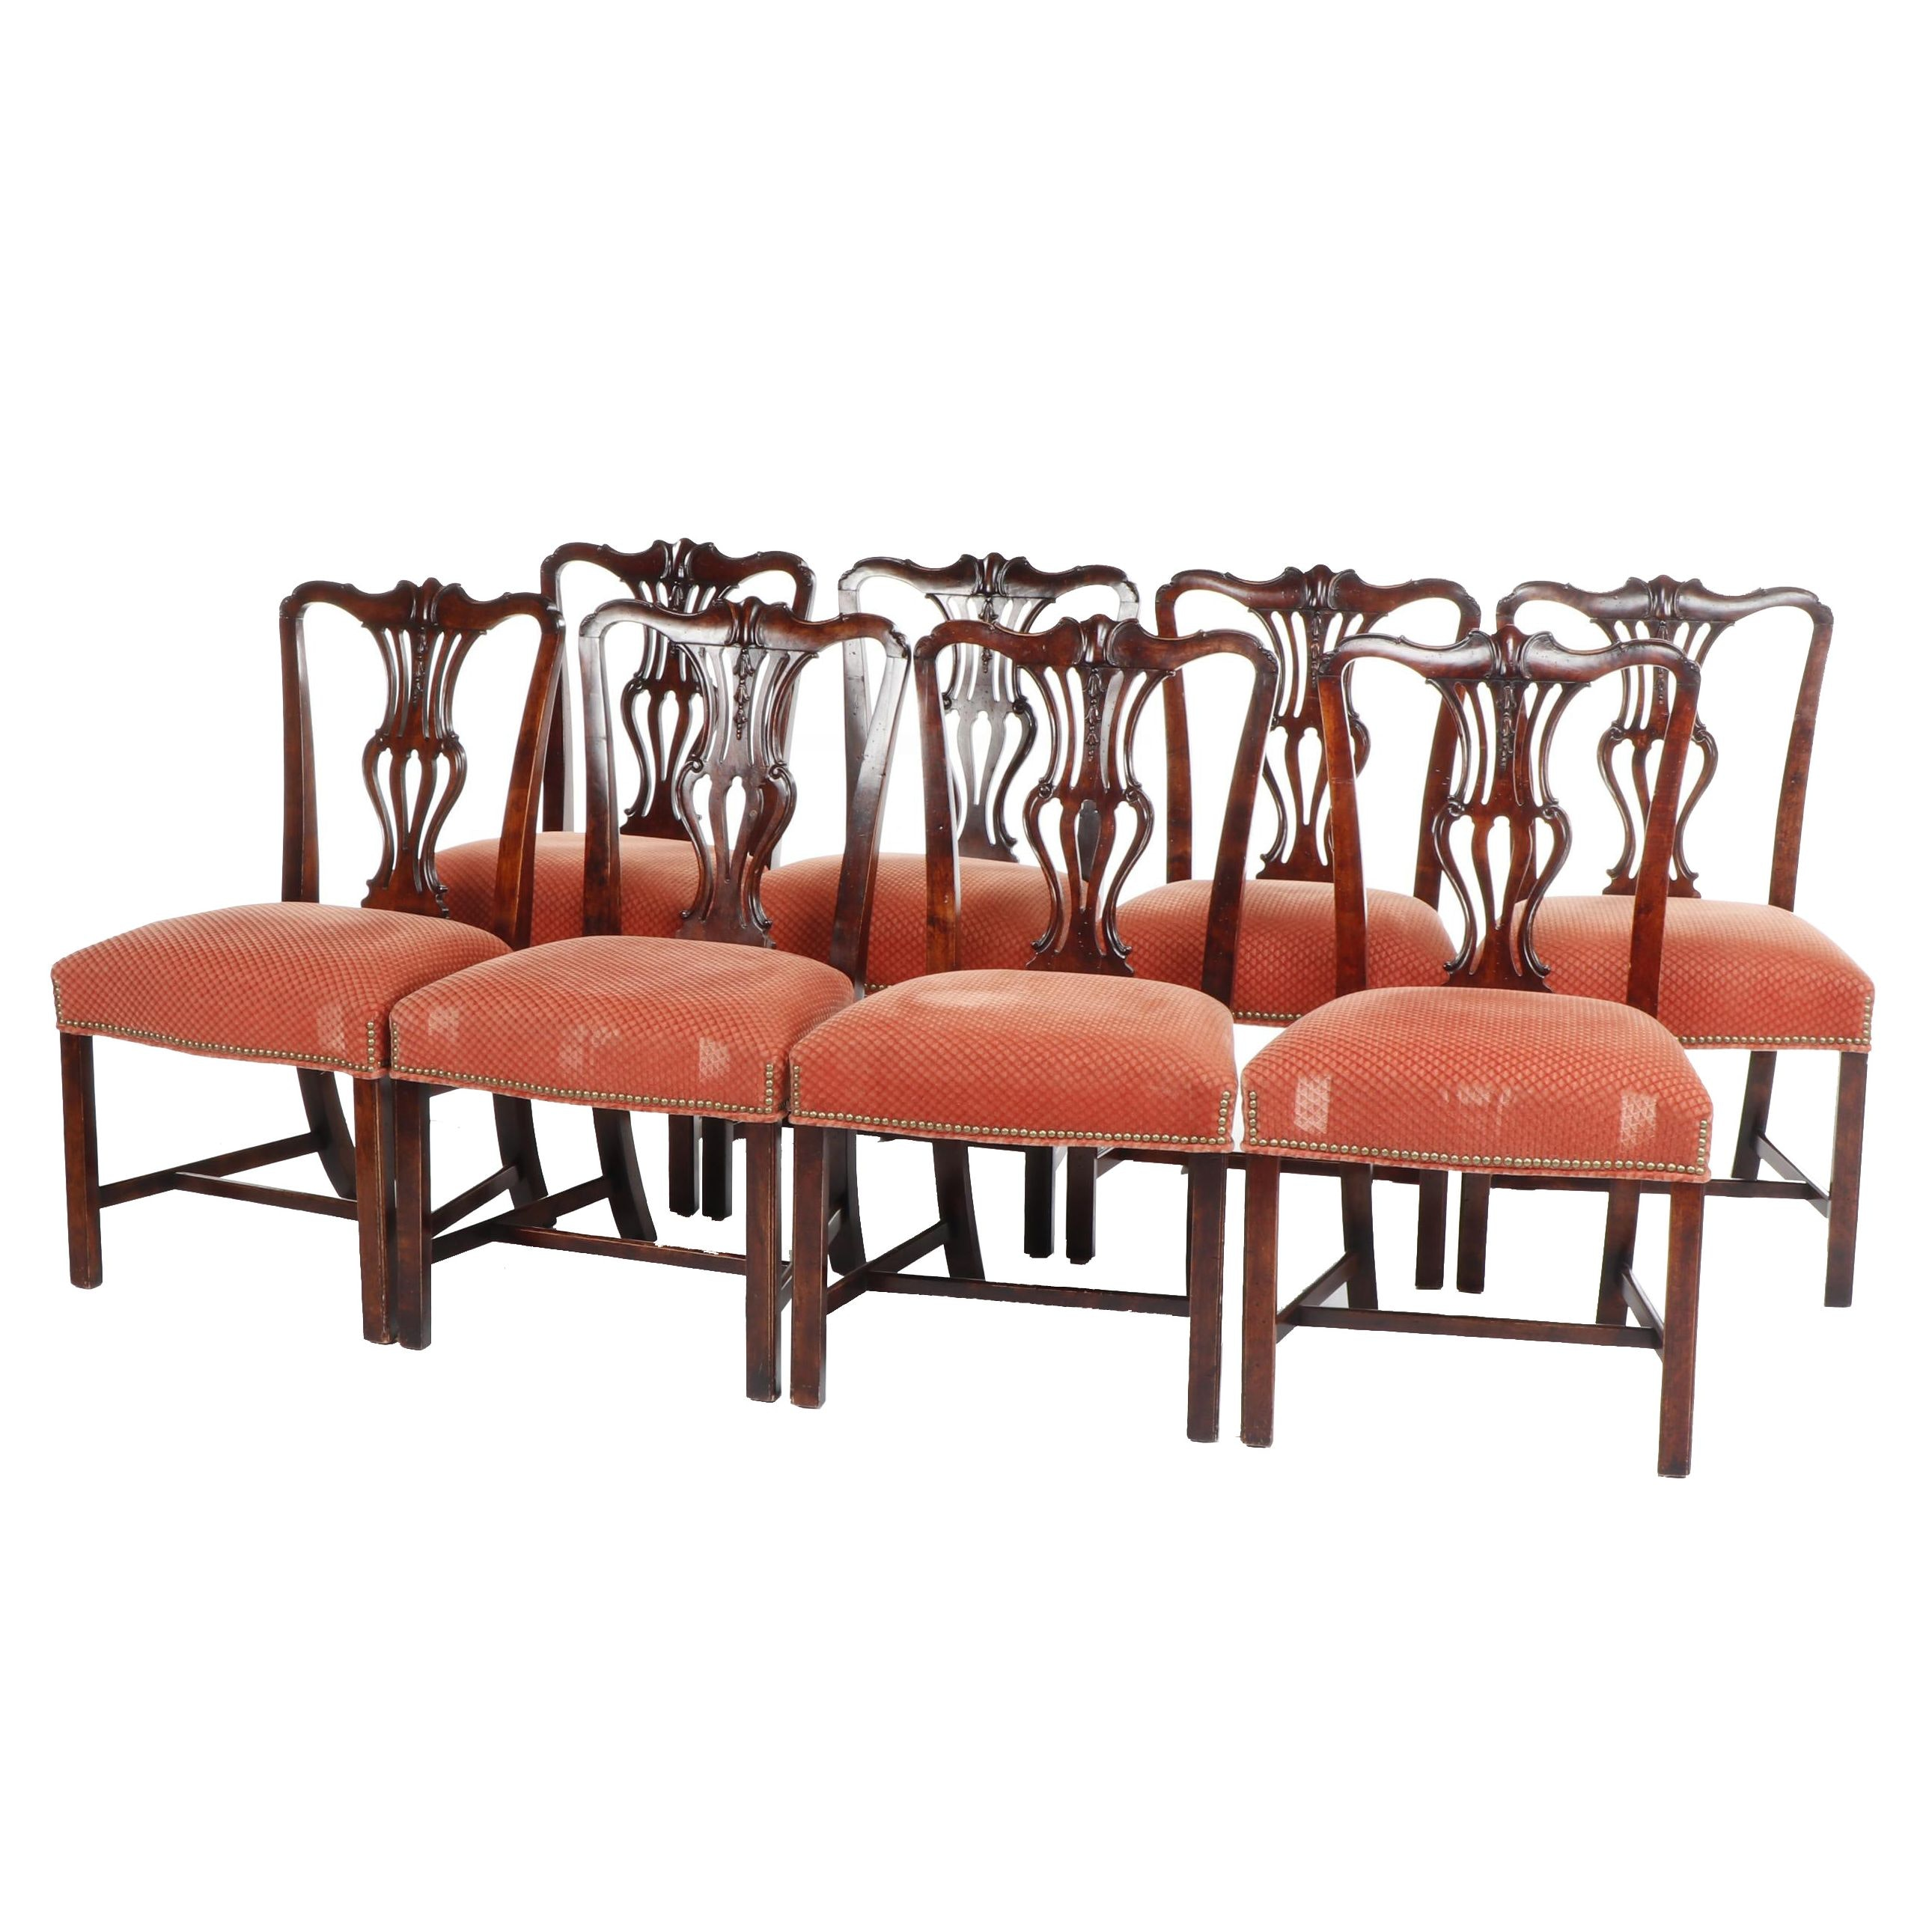 Set of Chippendale Transitional Style Wooden Upholstered Chairs